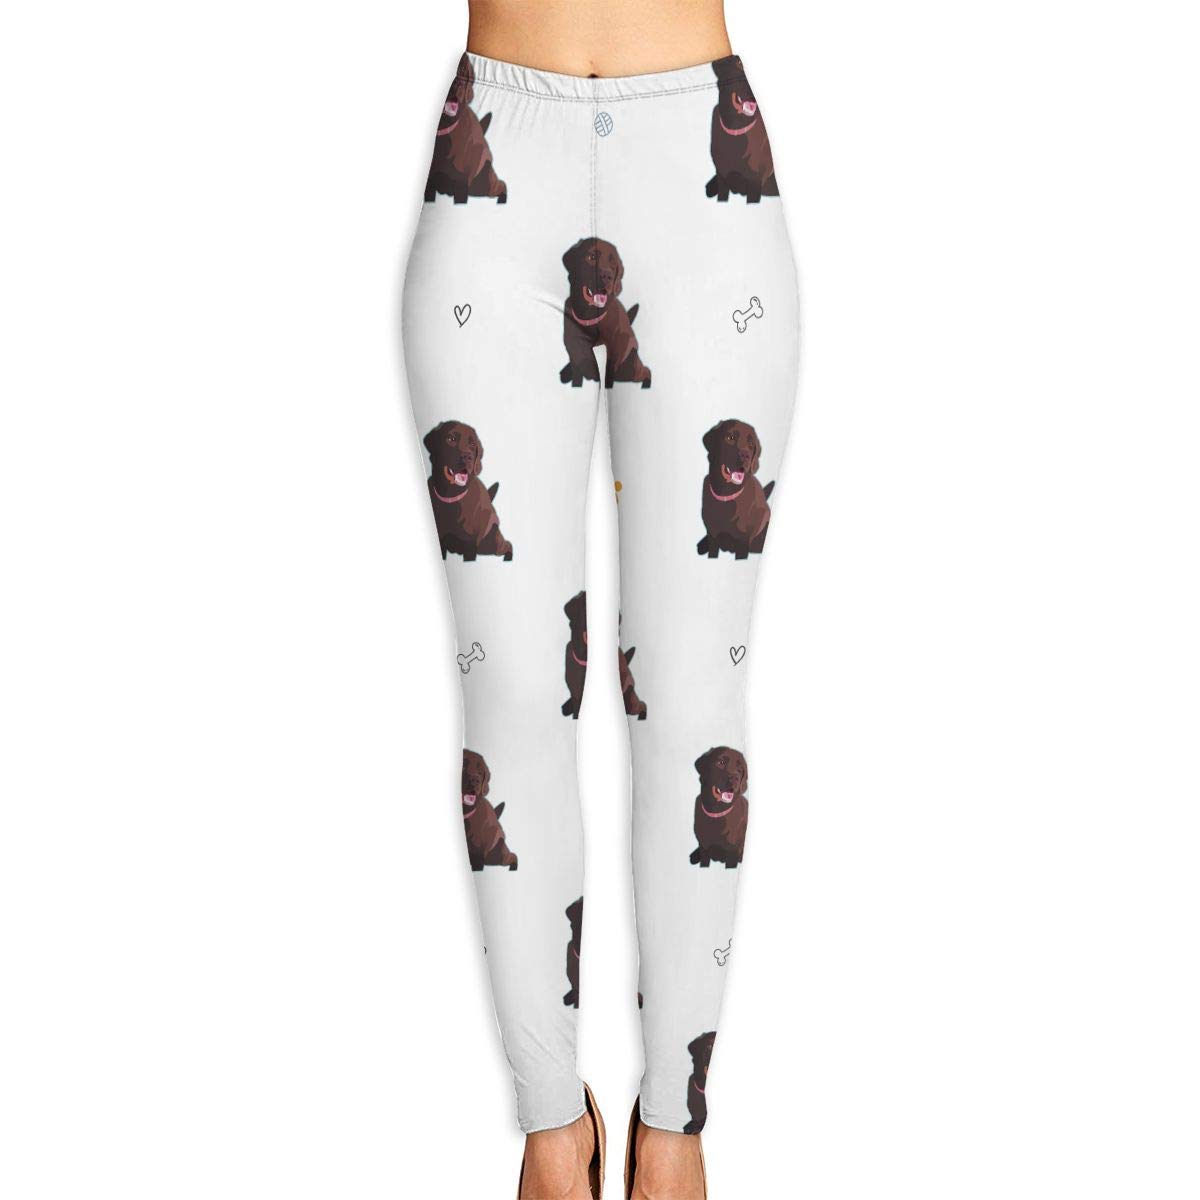 Amazon.com: FannyMT Women¡¯s High Waist Chocolate Lab ...